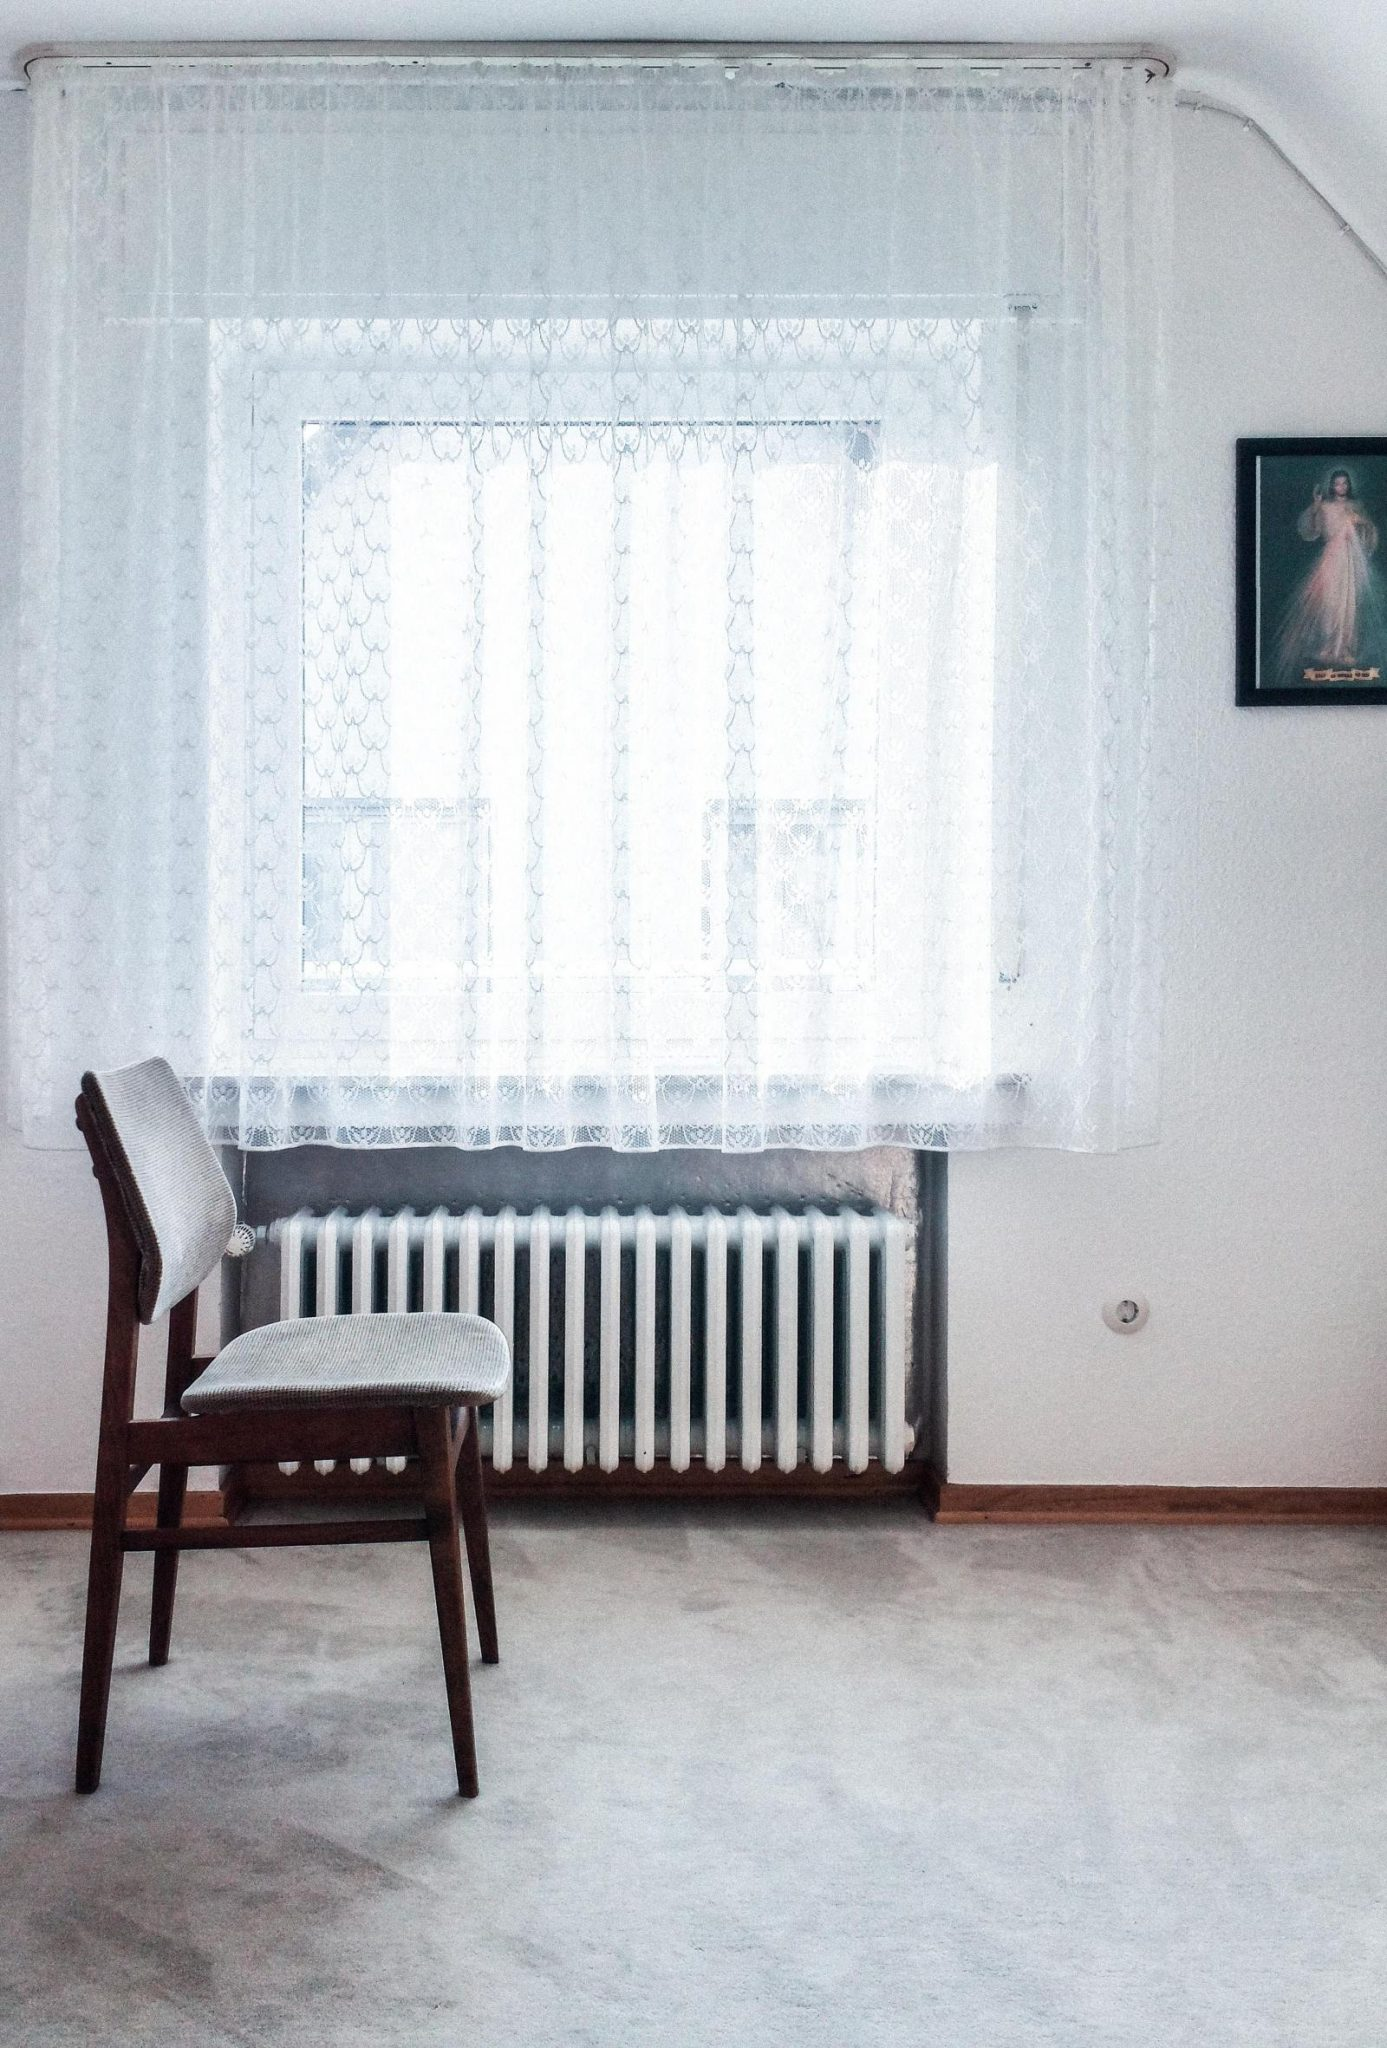 oil radiator in room with chair in foreground